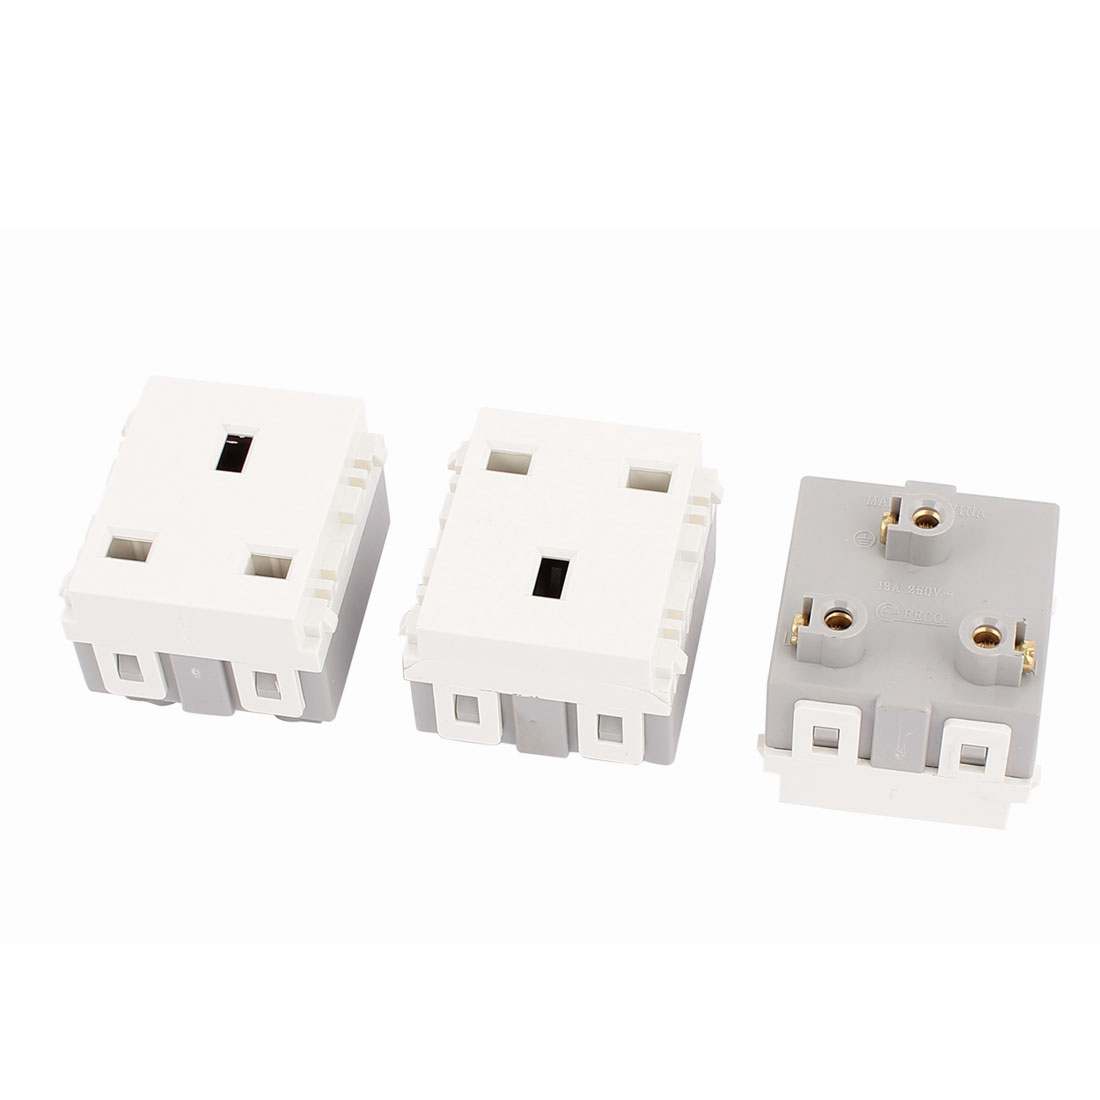 3 Pcs AC 250V 13A UK Socket Electrical Modular Power Outlet for 86 Wall Plate Panel